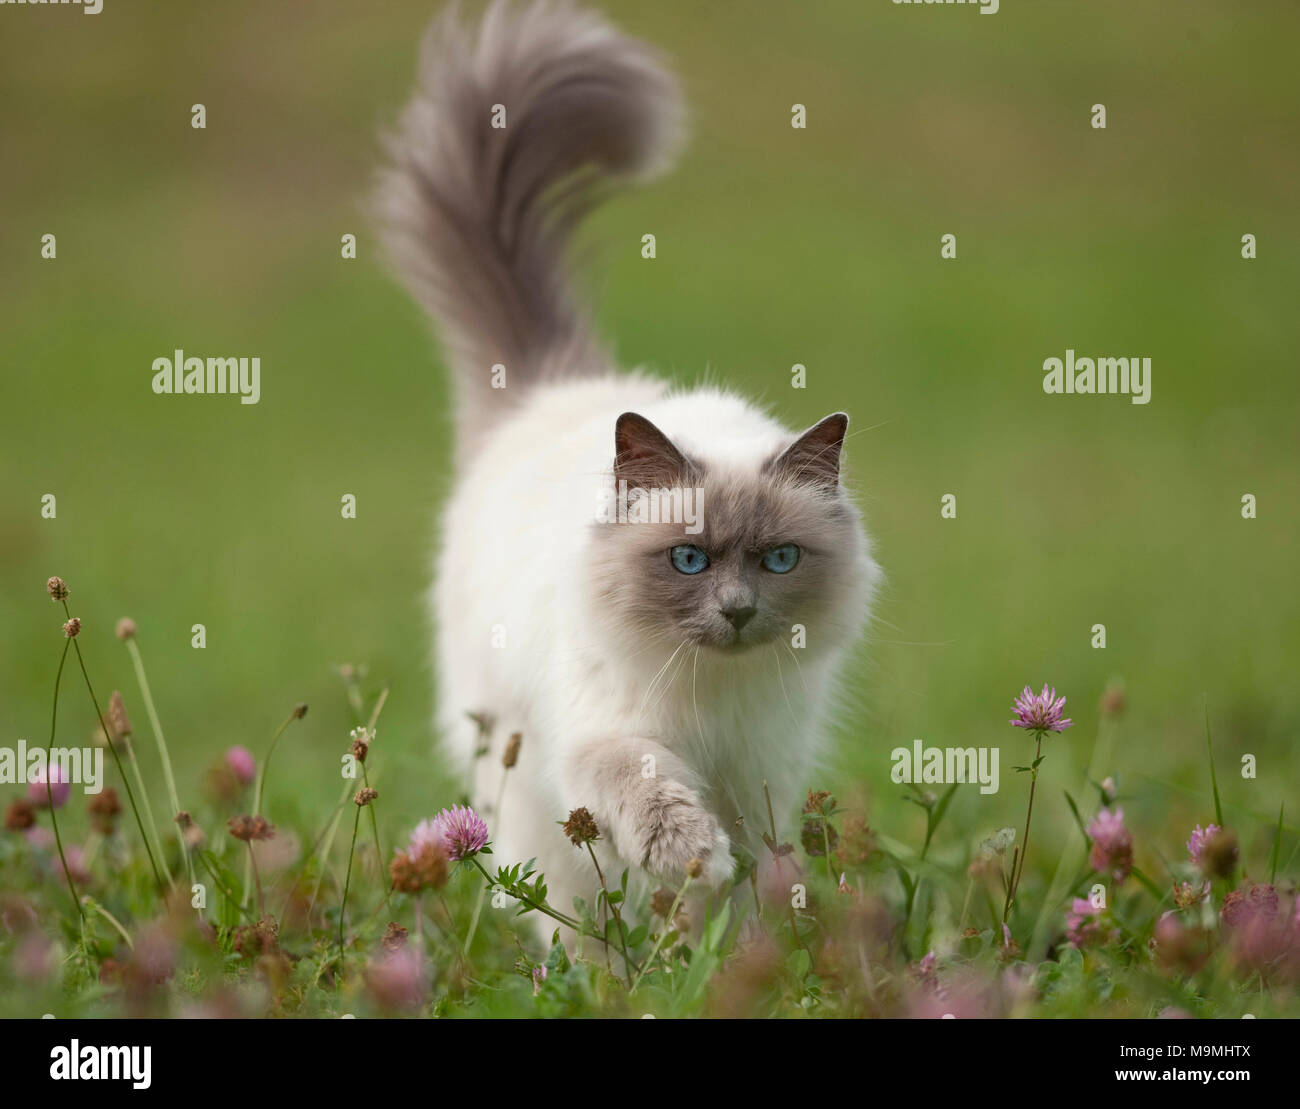 Sacred cat of Burma. Adult cat walking on a meadow, seen head-on. Germany - Stock Image